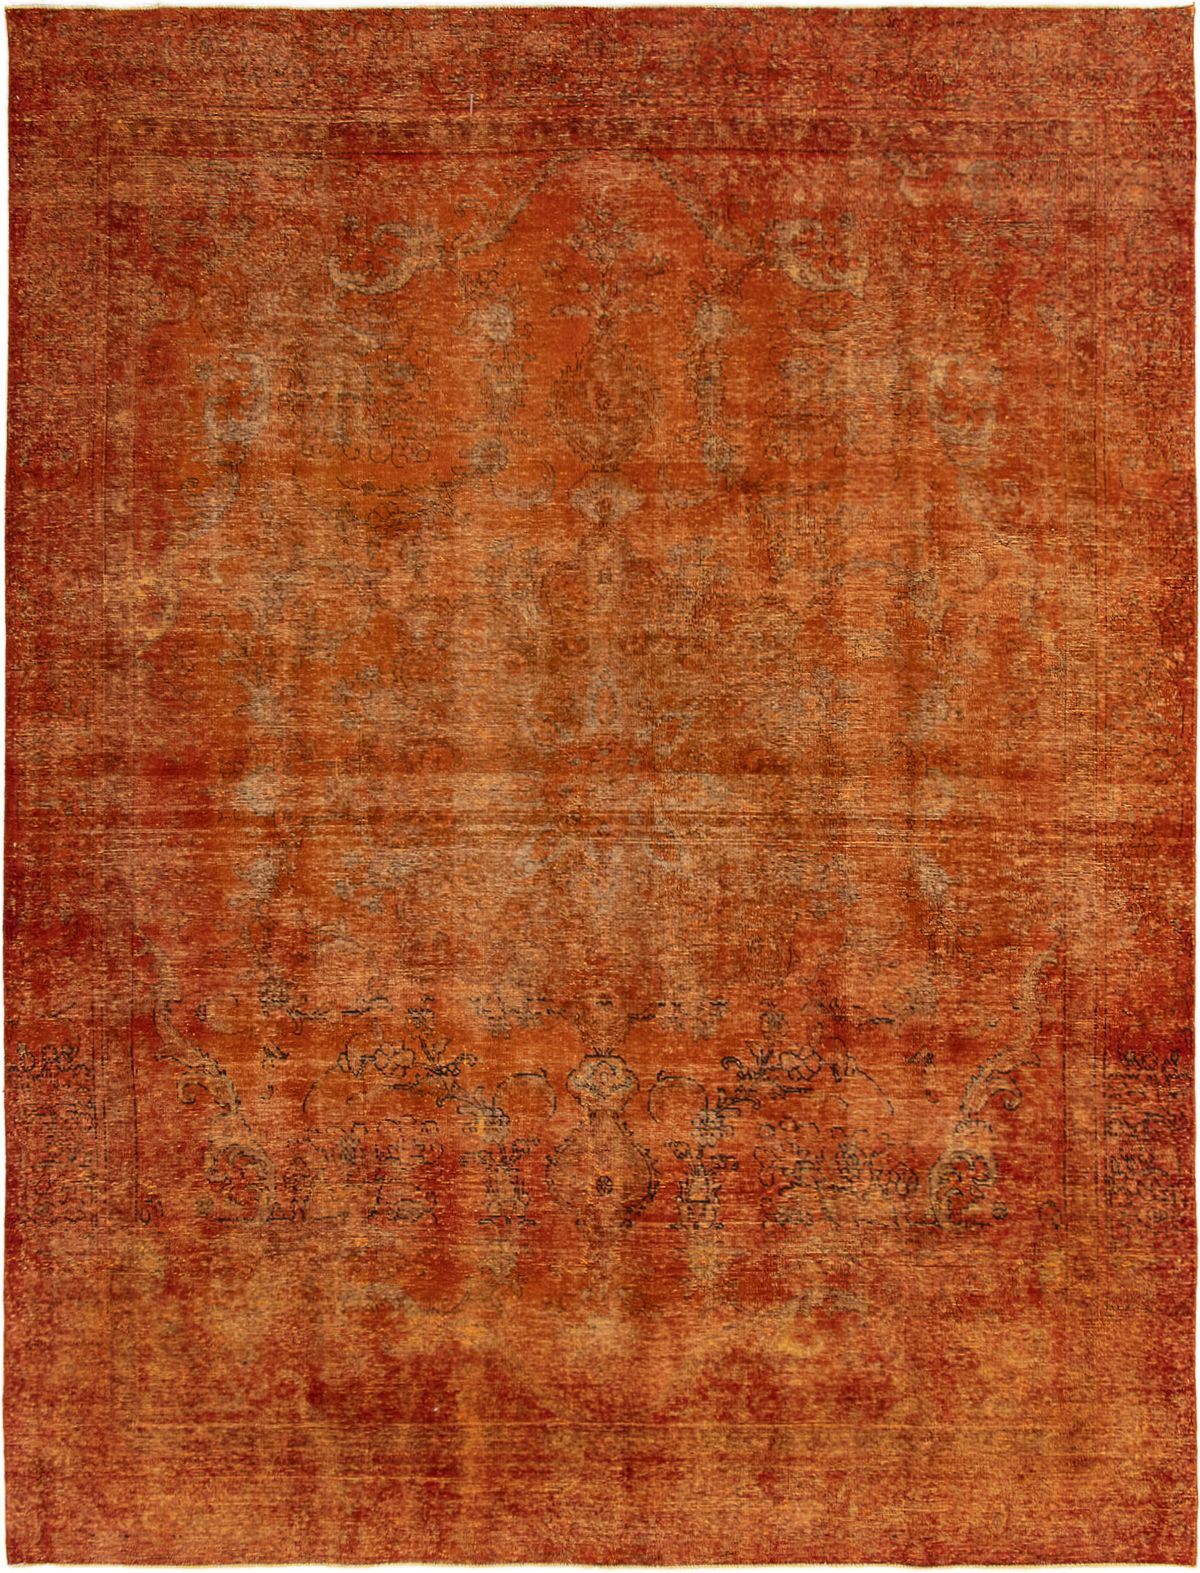 """Hand-knotted Color Transition Burnt Orange Wool Rug 9'1"""" x 12'0"""" Size: 9'1"""" x 12'0"""""""